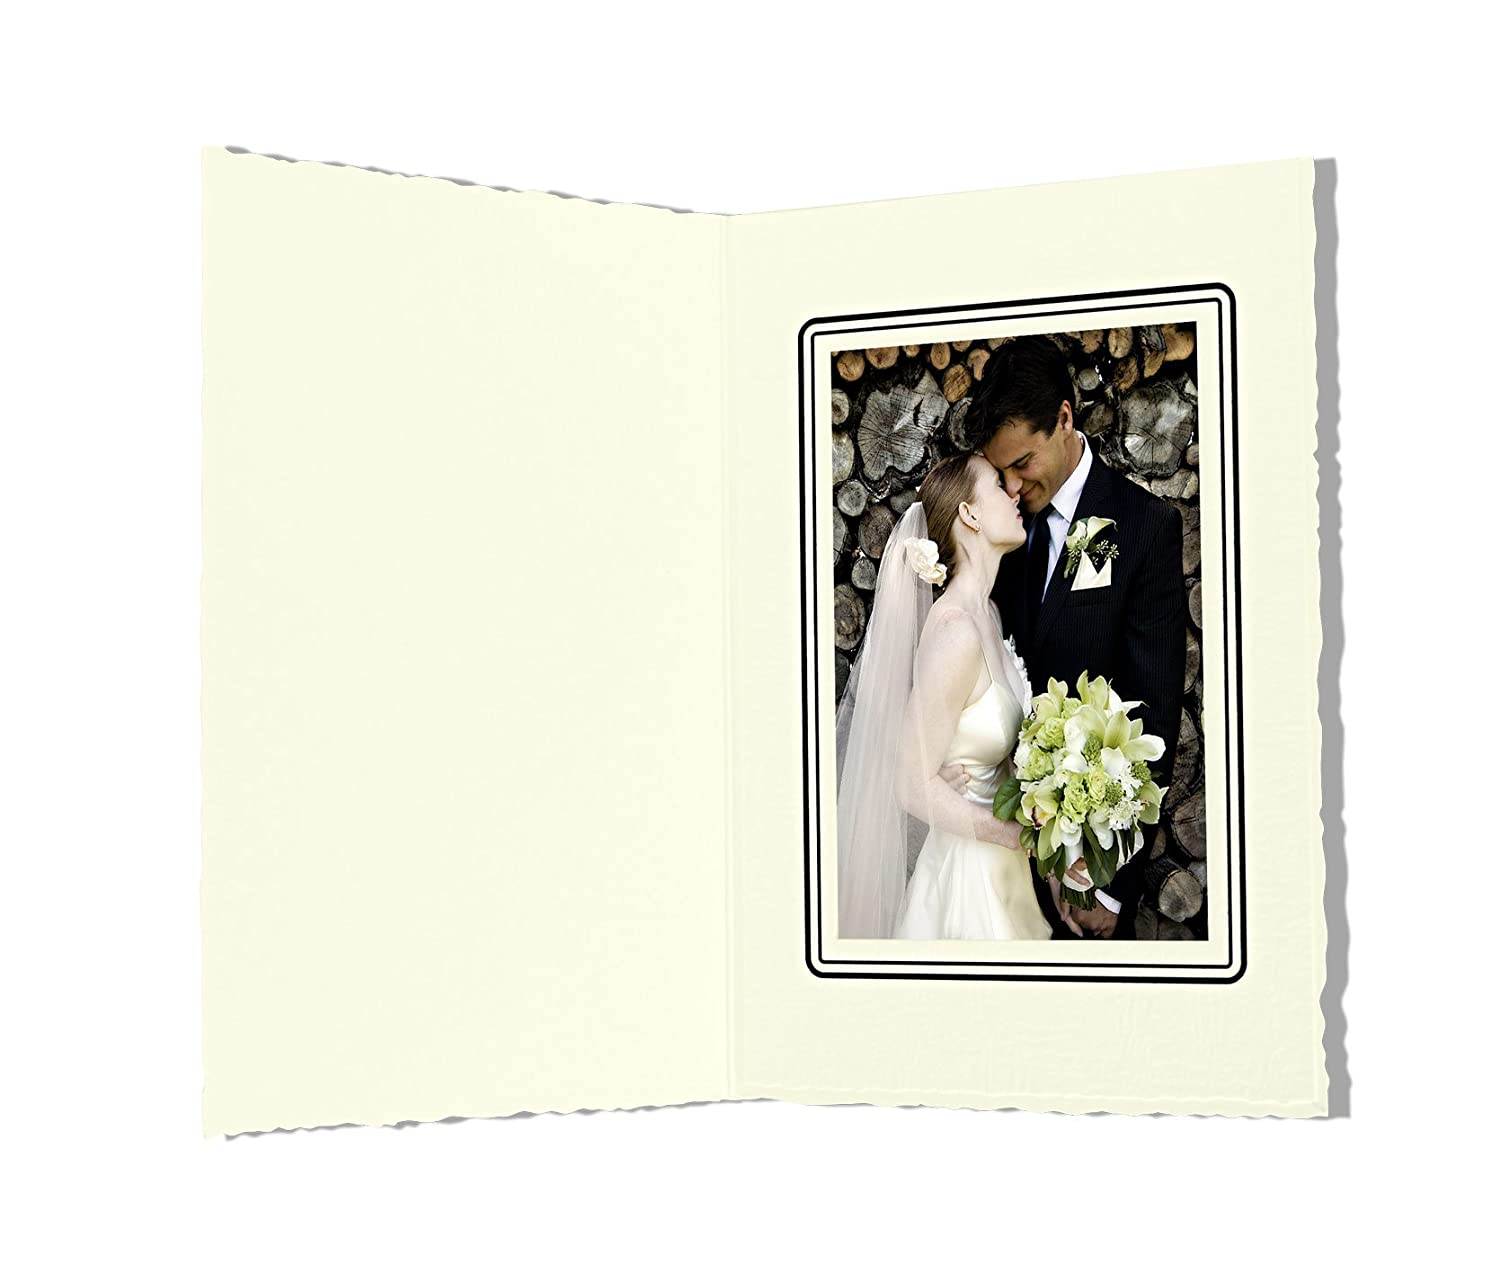 Golden State Art, Cardboard Photo Folder For a 3.5x5 Photo (Pack of 50) GS006 Ivory Color